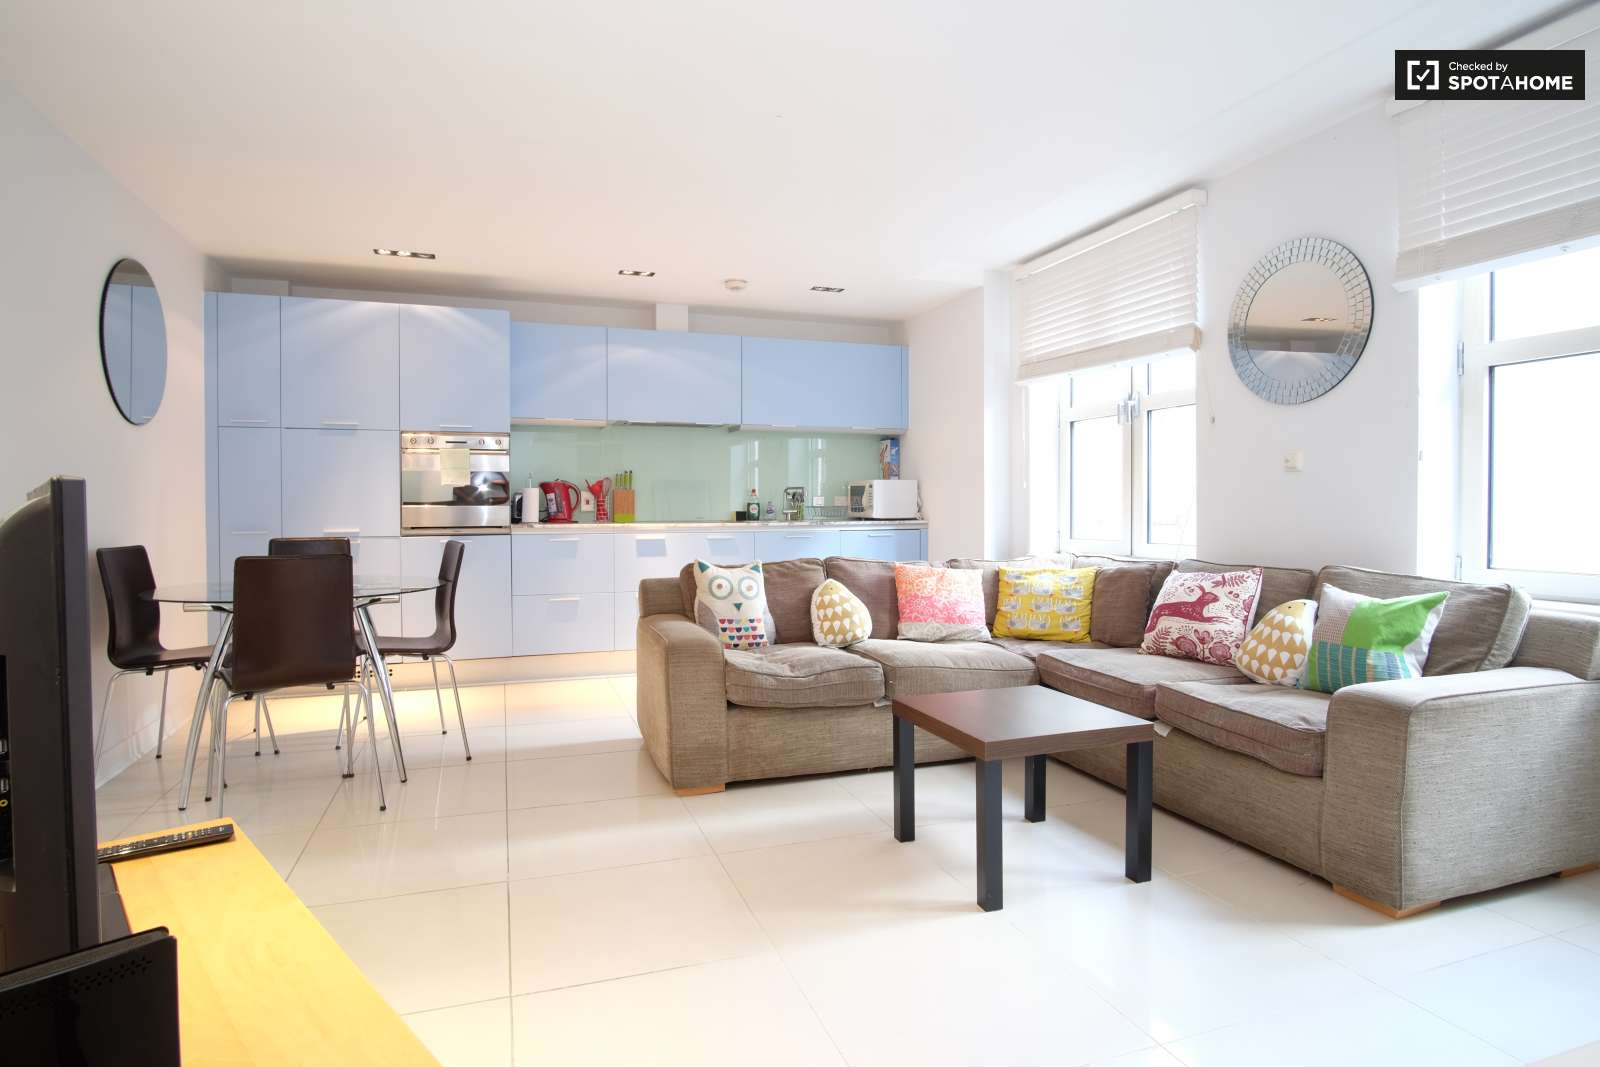 1 Bedroom Apartment To Rent In City Of London London Ref 148055 Spotahome